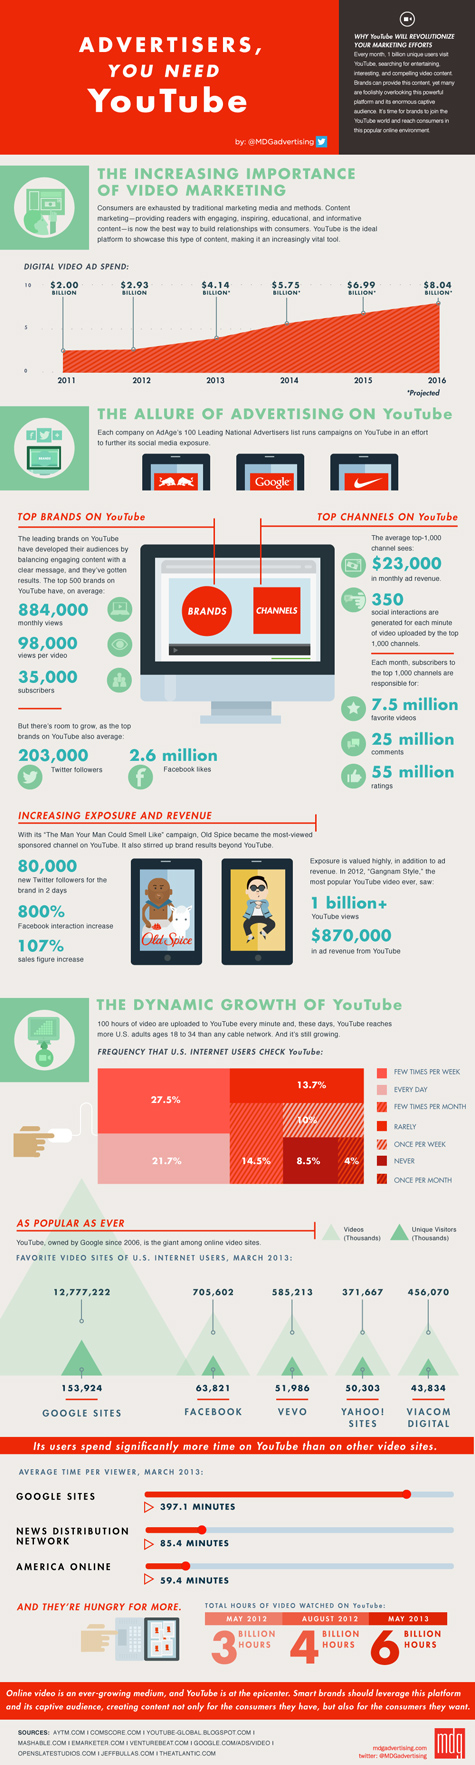 infographic-advertisers-you-need-youtube-475